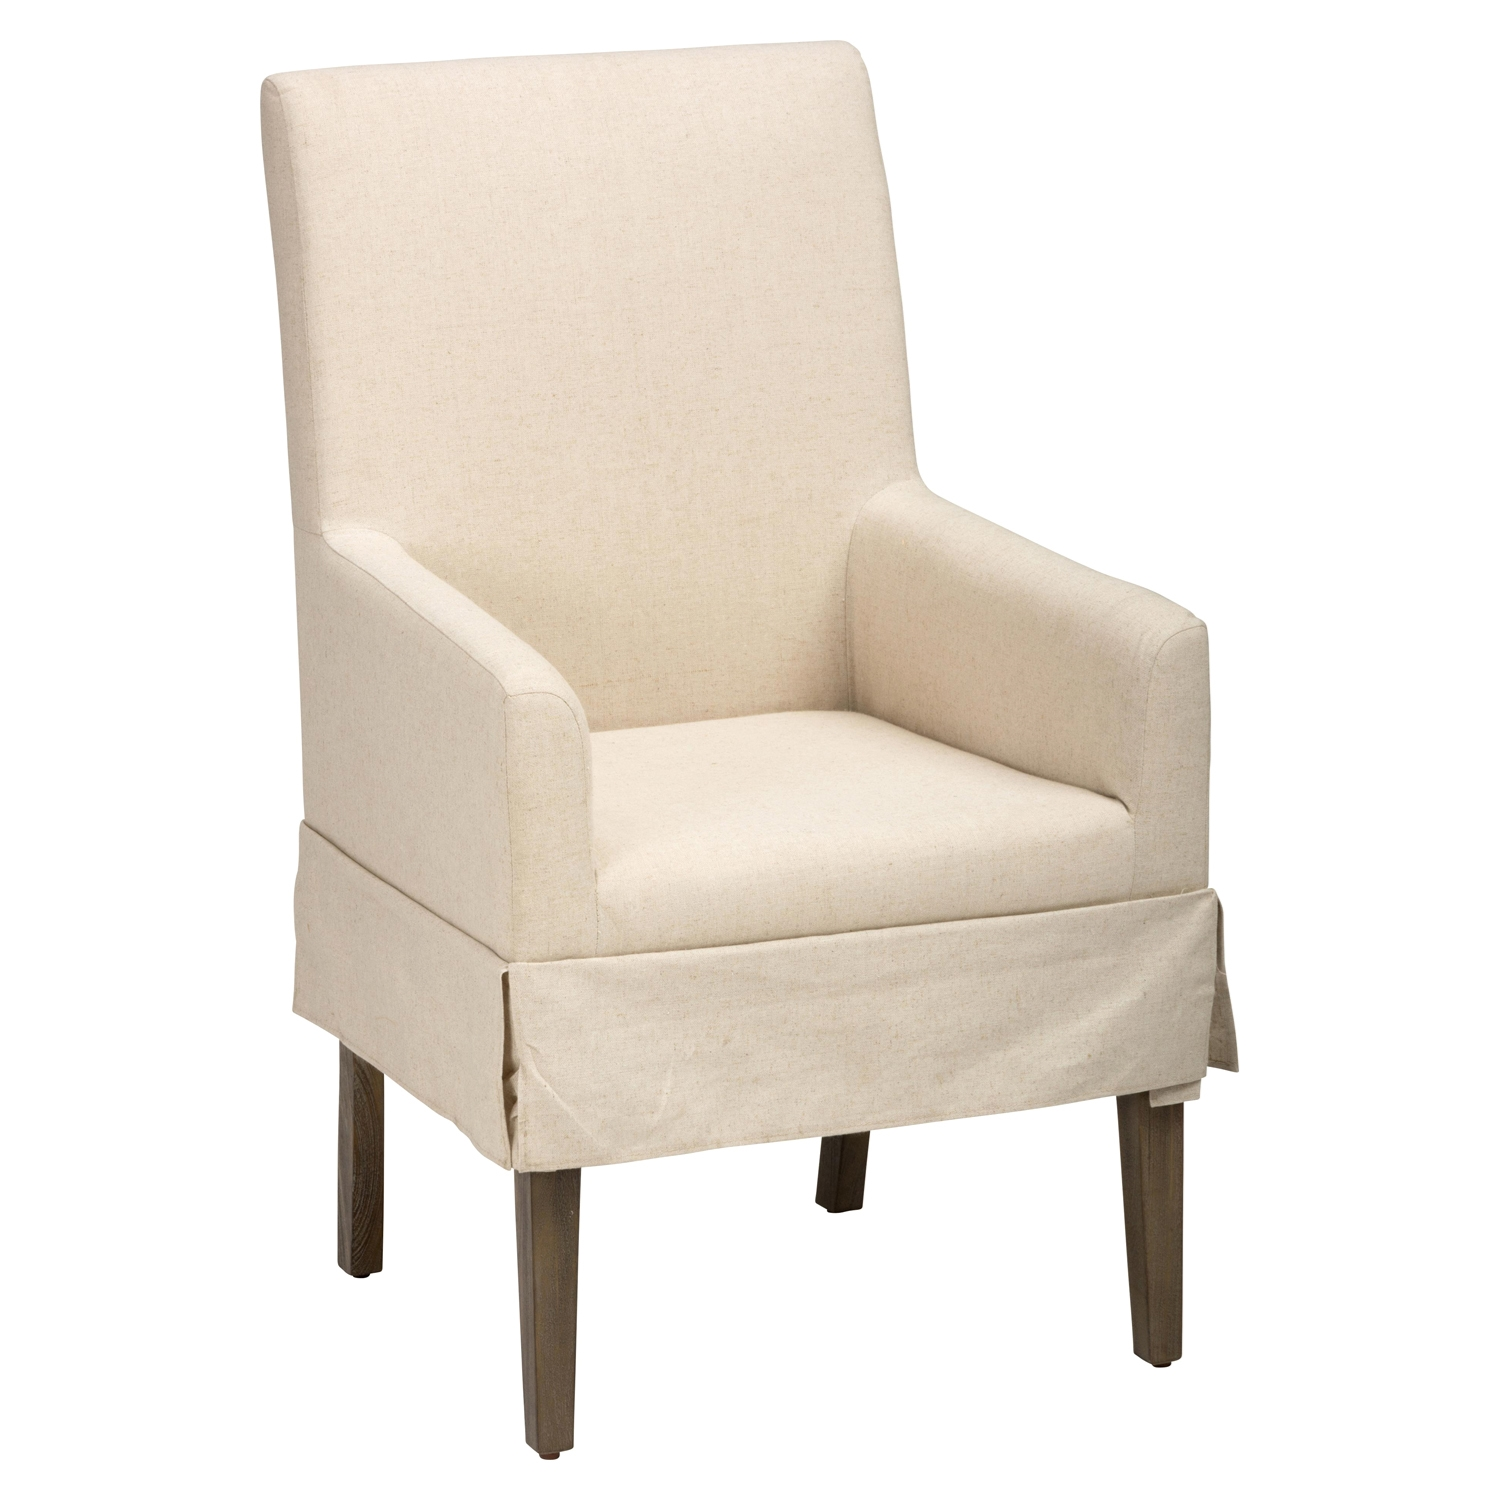 Hampton Slipcovered Dining Chair - Cream - JOFR-872-147KD